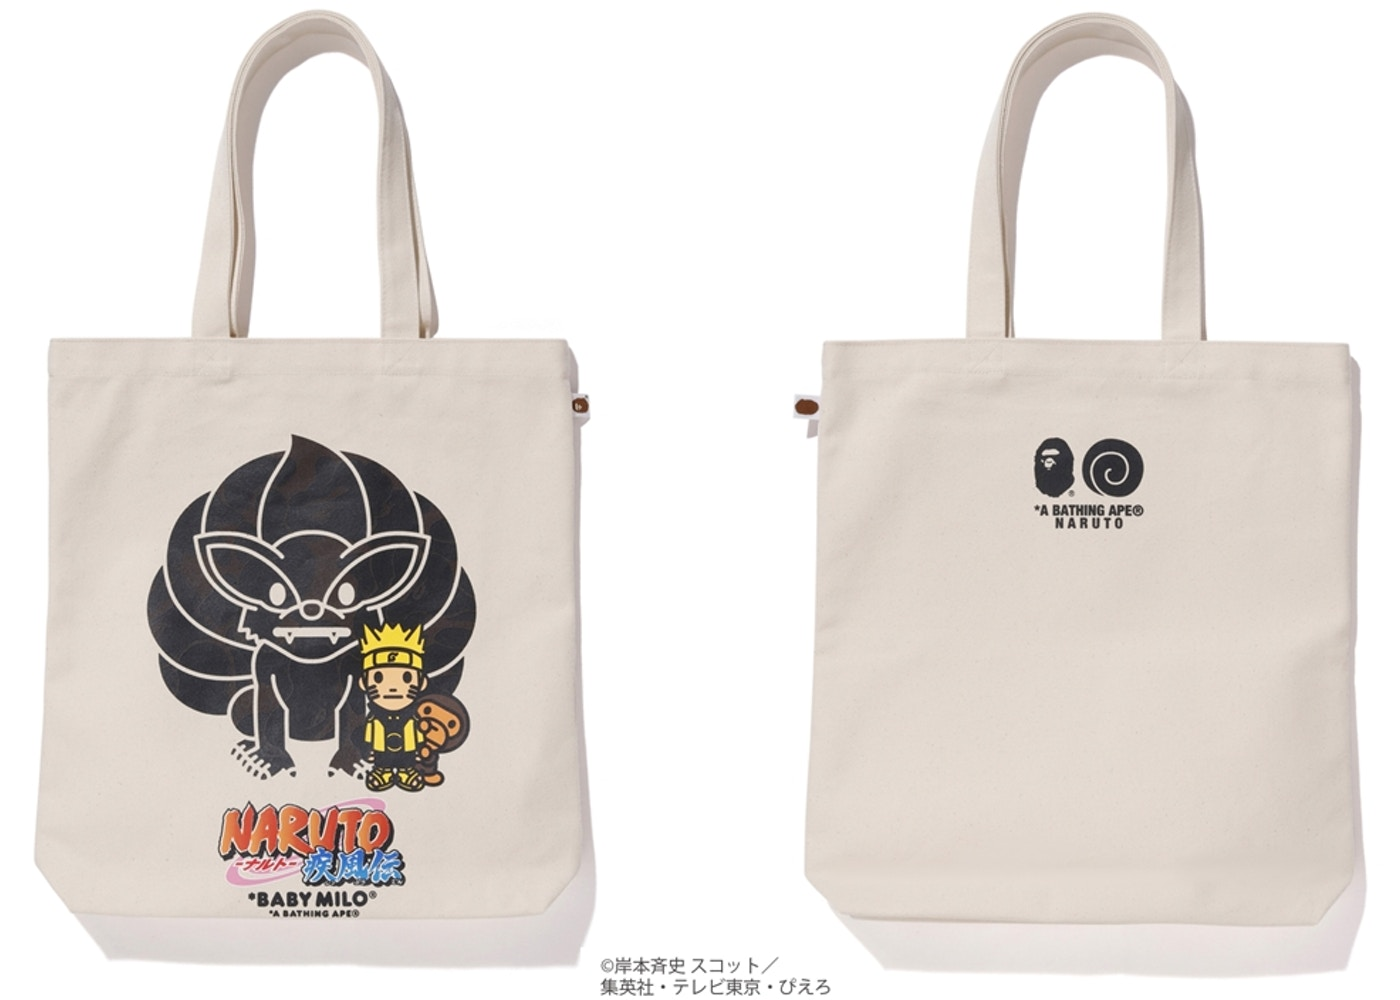 a3521adc2ad5 Bape Bags - Buy   Sell Streetwear